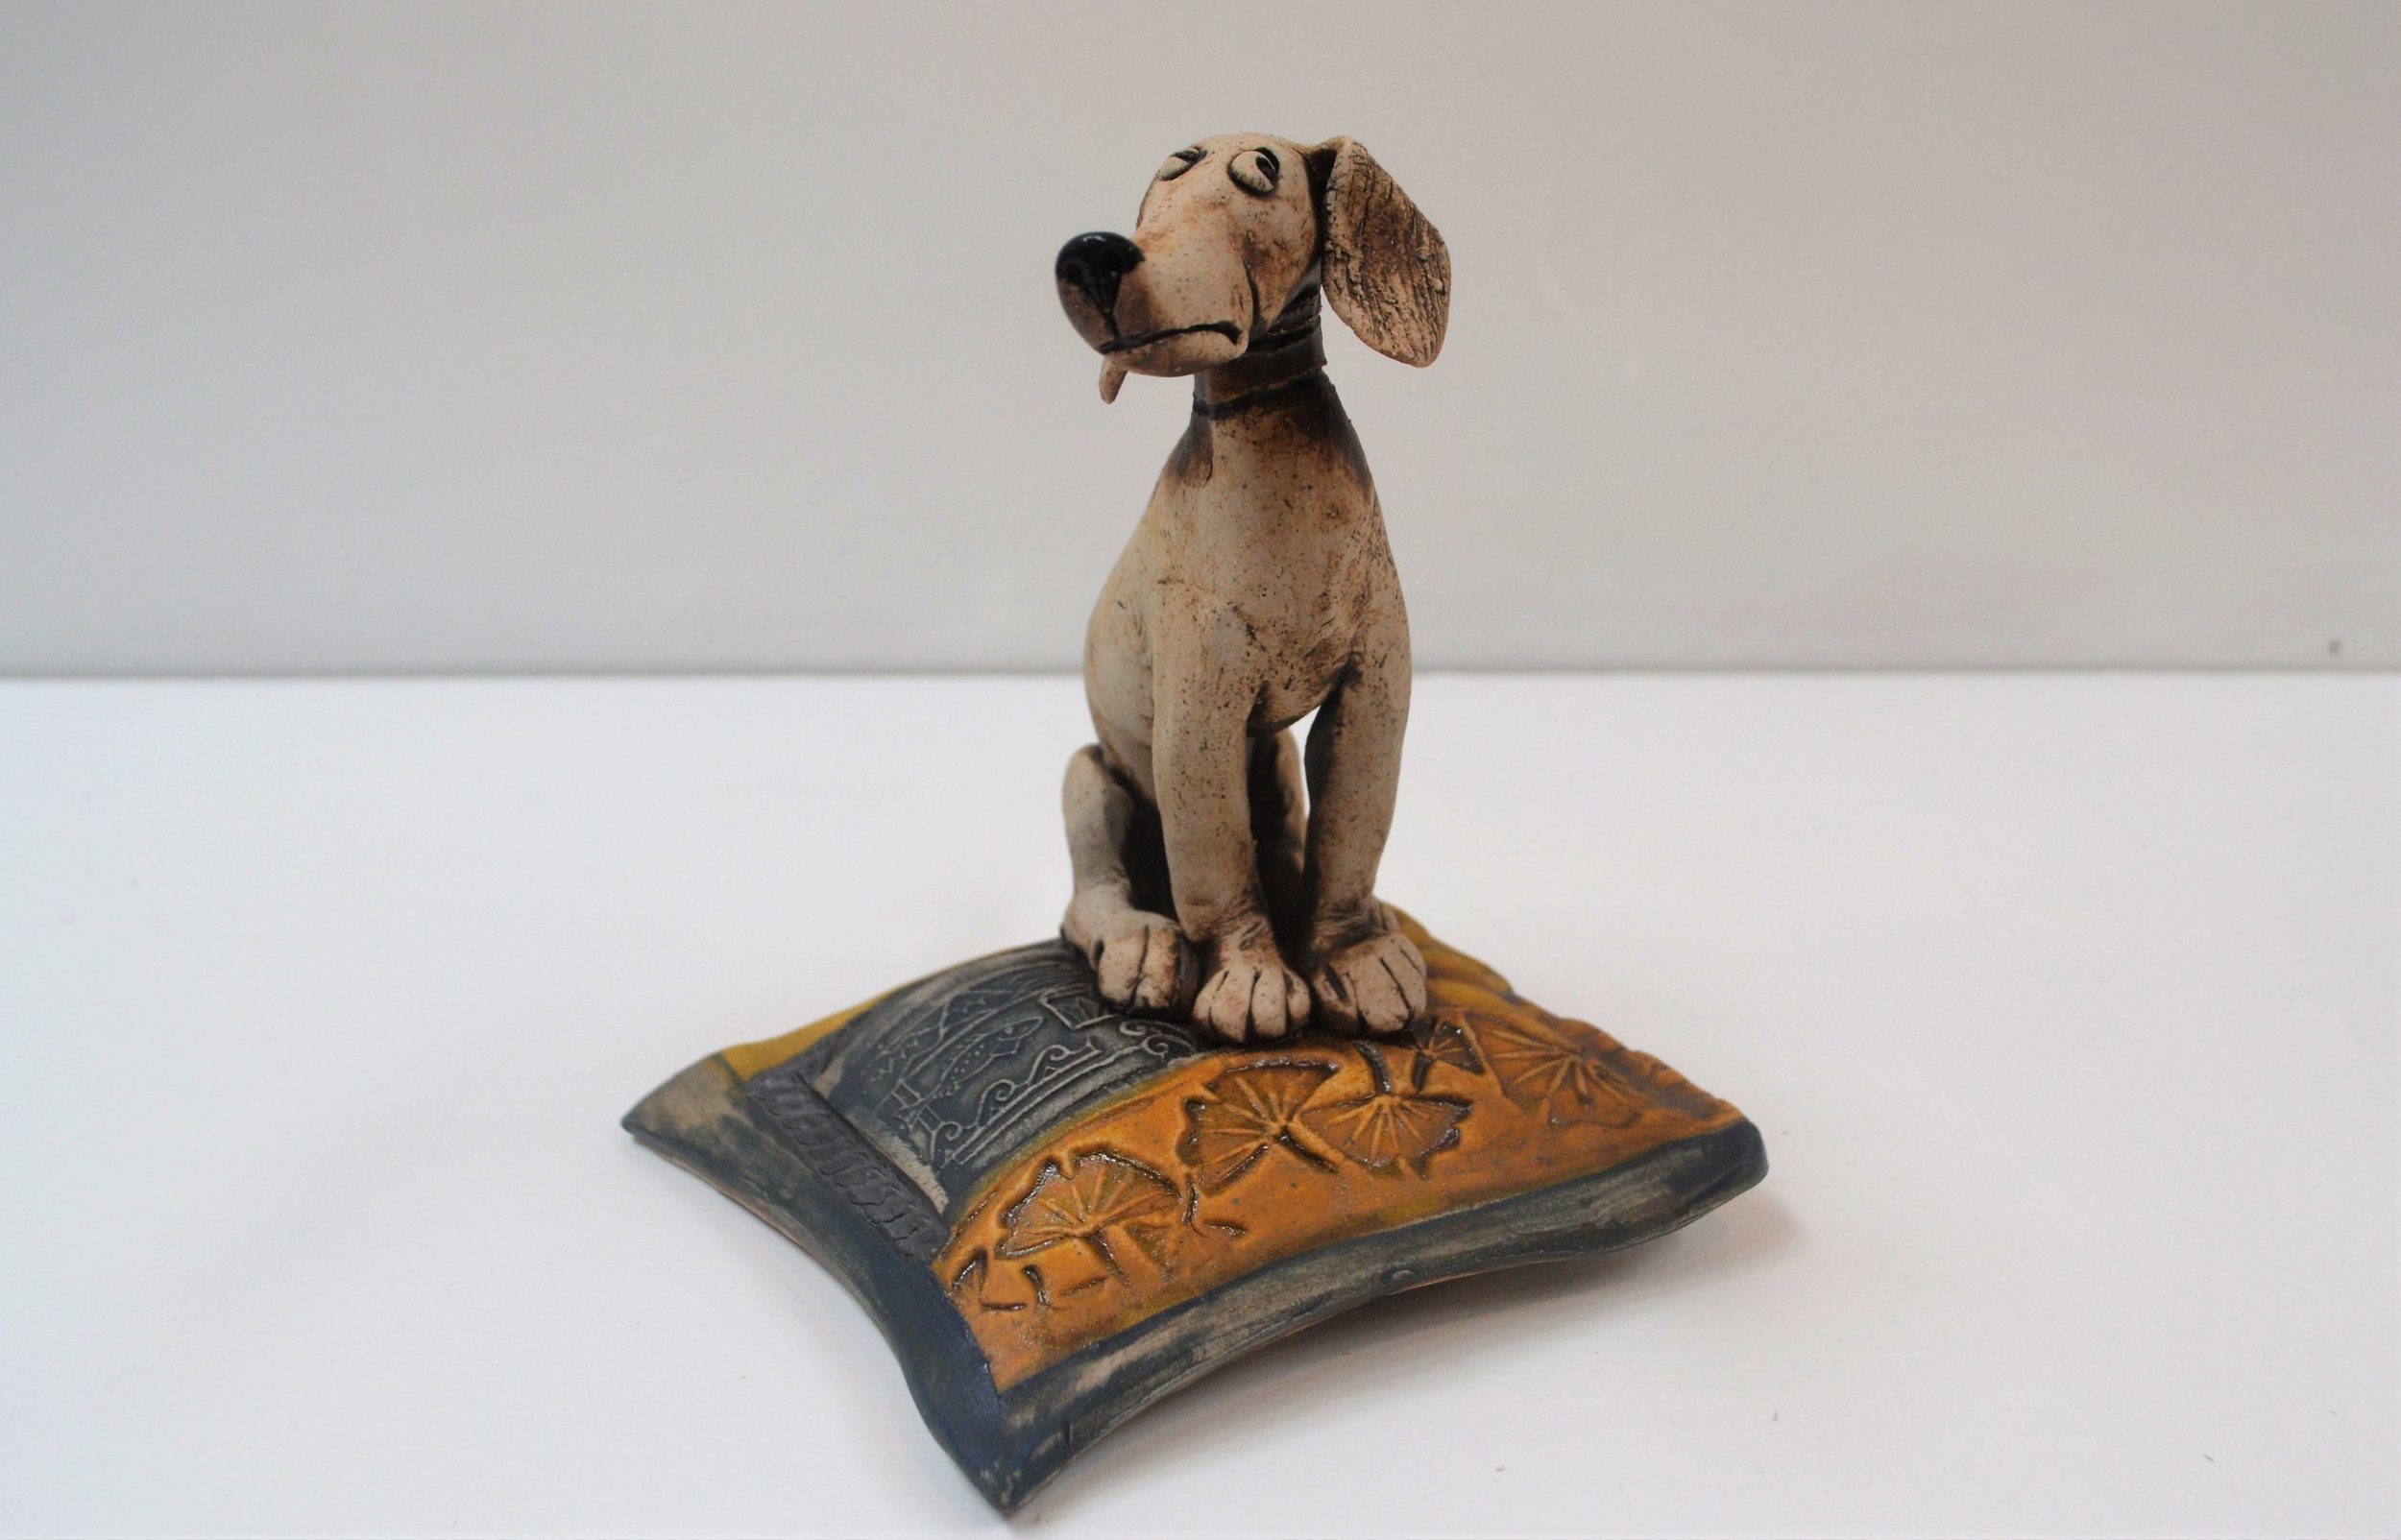 Sitting Dog on Cushion  Fiona Tunnicliffe, hand formed ceramic sculpture, 170mm height  sold